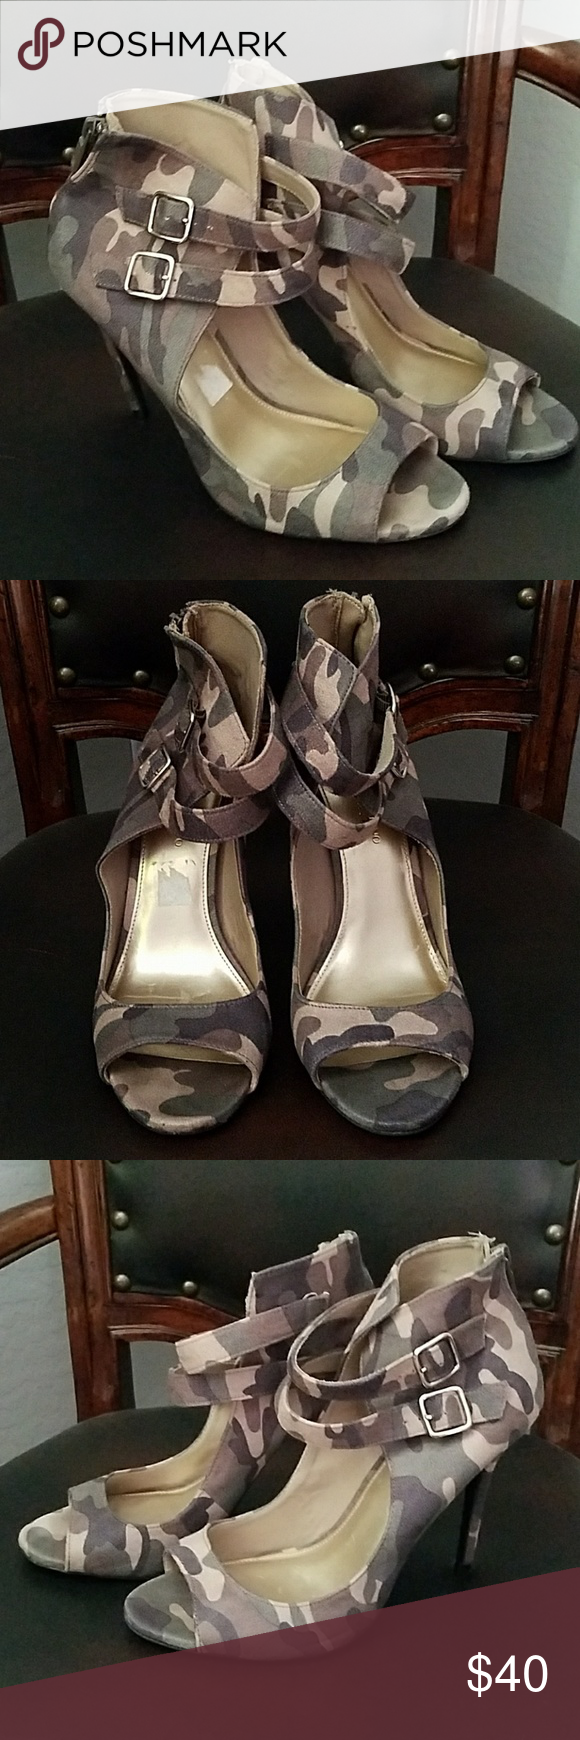 CHRISTIAN SIRIANO CAMO HEELS Size 11, cute camo heel with two straps around the front, bottoms in excellent shape, zipper on back for easy access,  open toe. Christian Siriano Shoes